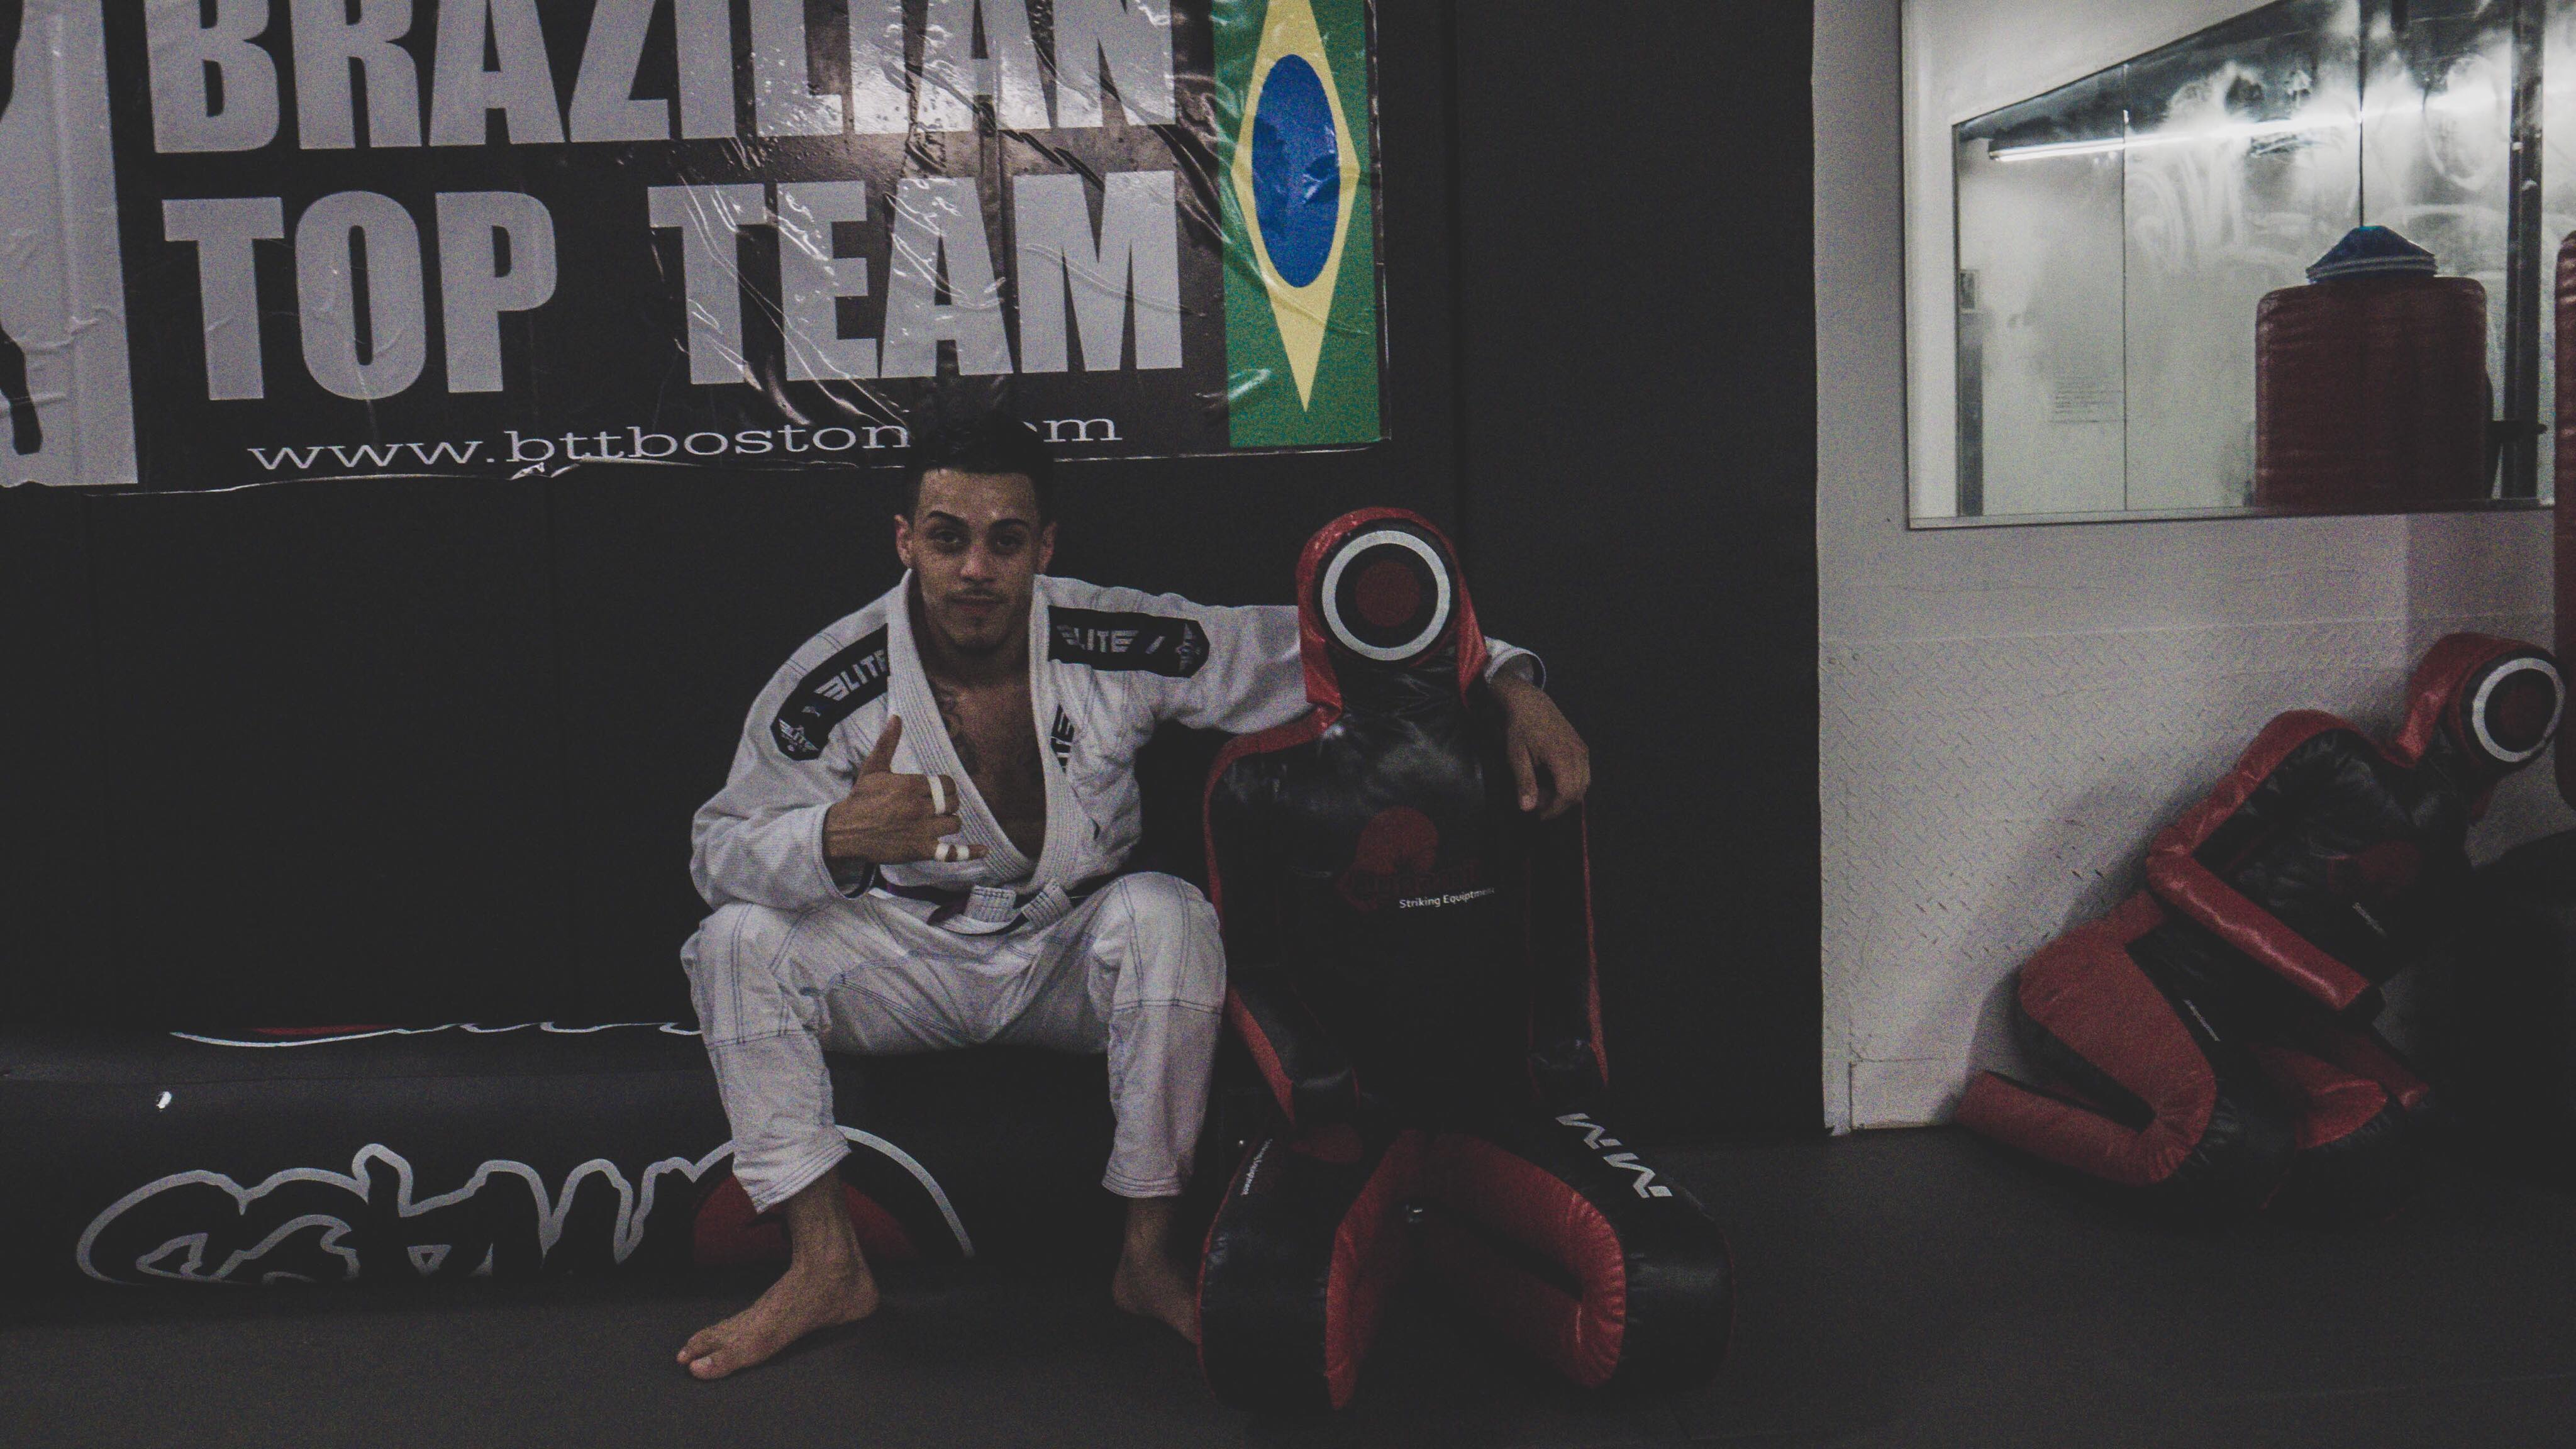 Elite sports Team Elite BJJ Jefferson Zelaya image12.jpg